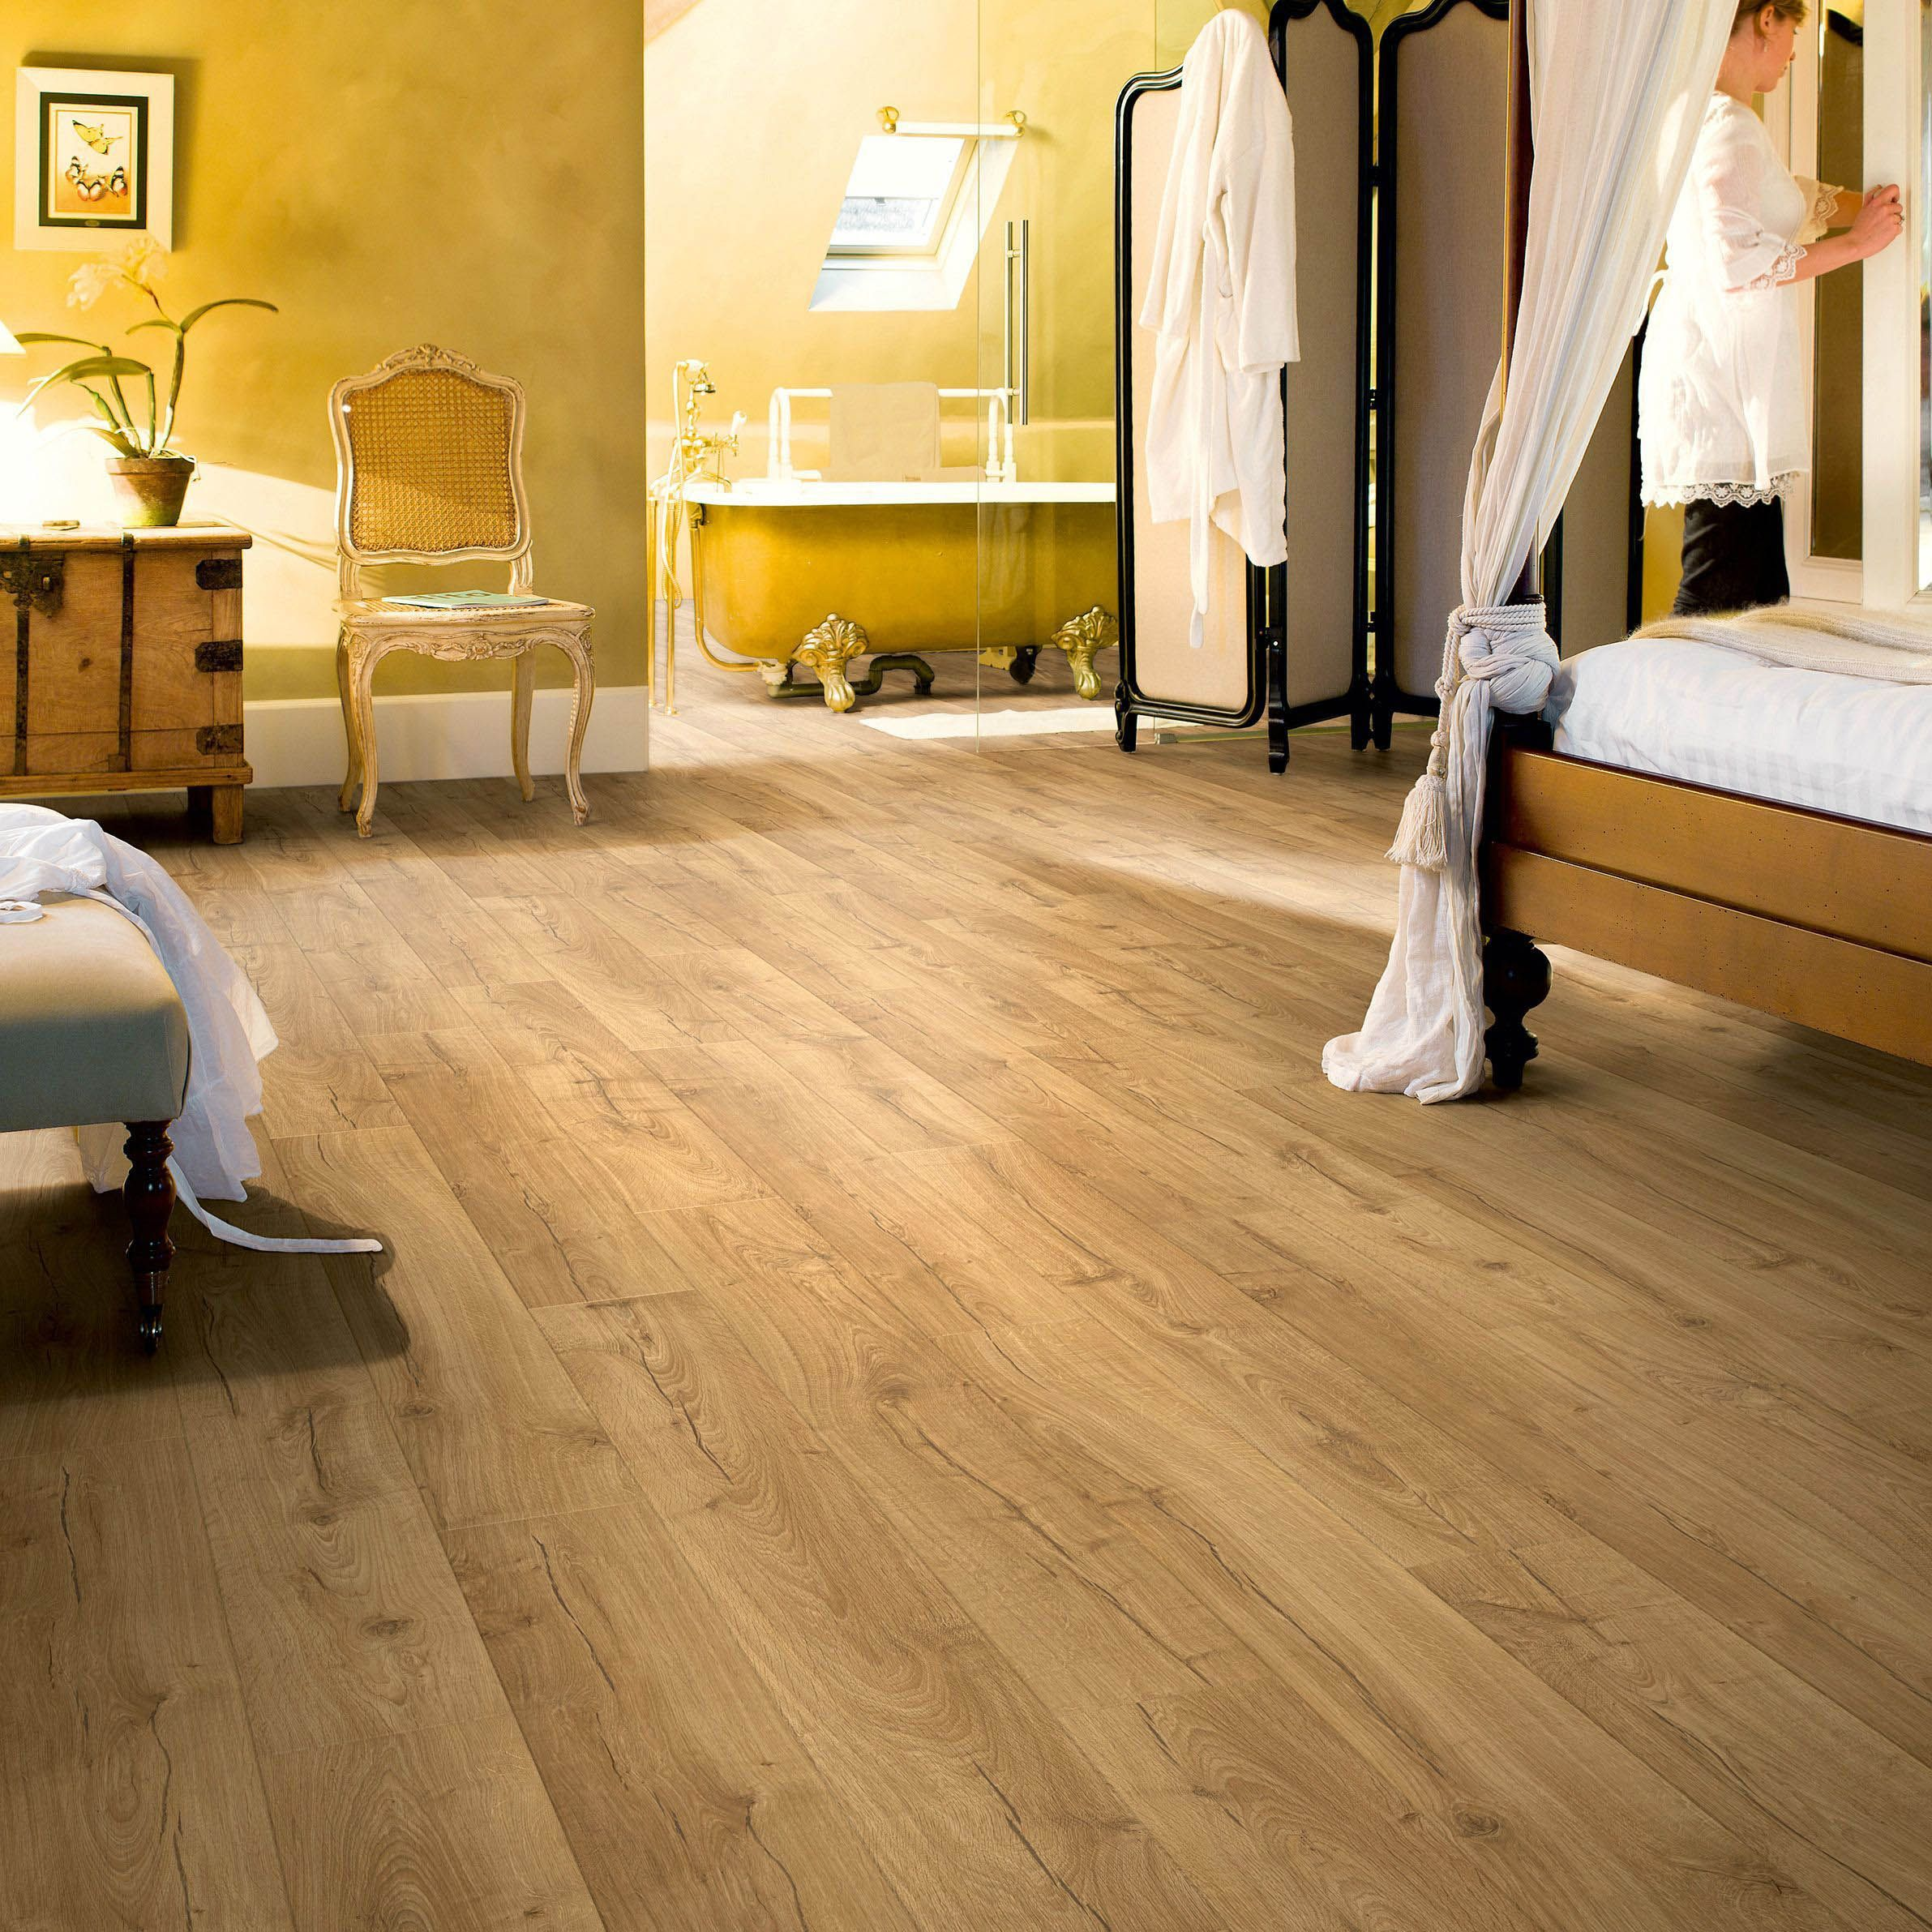 Laminate Flooring Is There A Waterproof Option Laminate